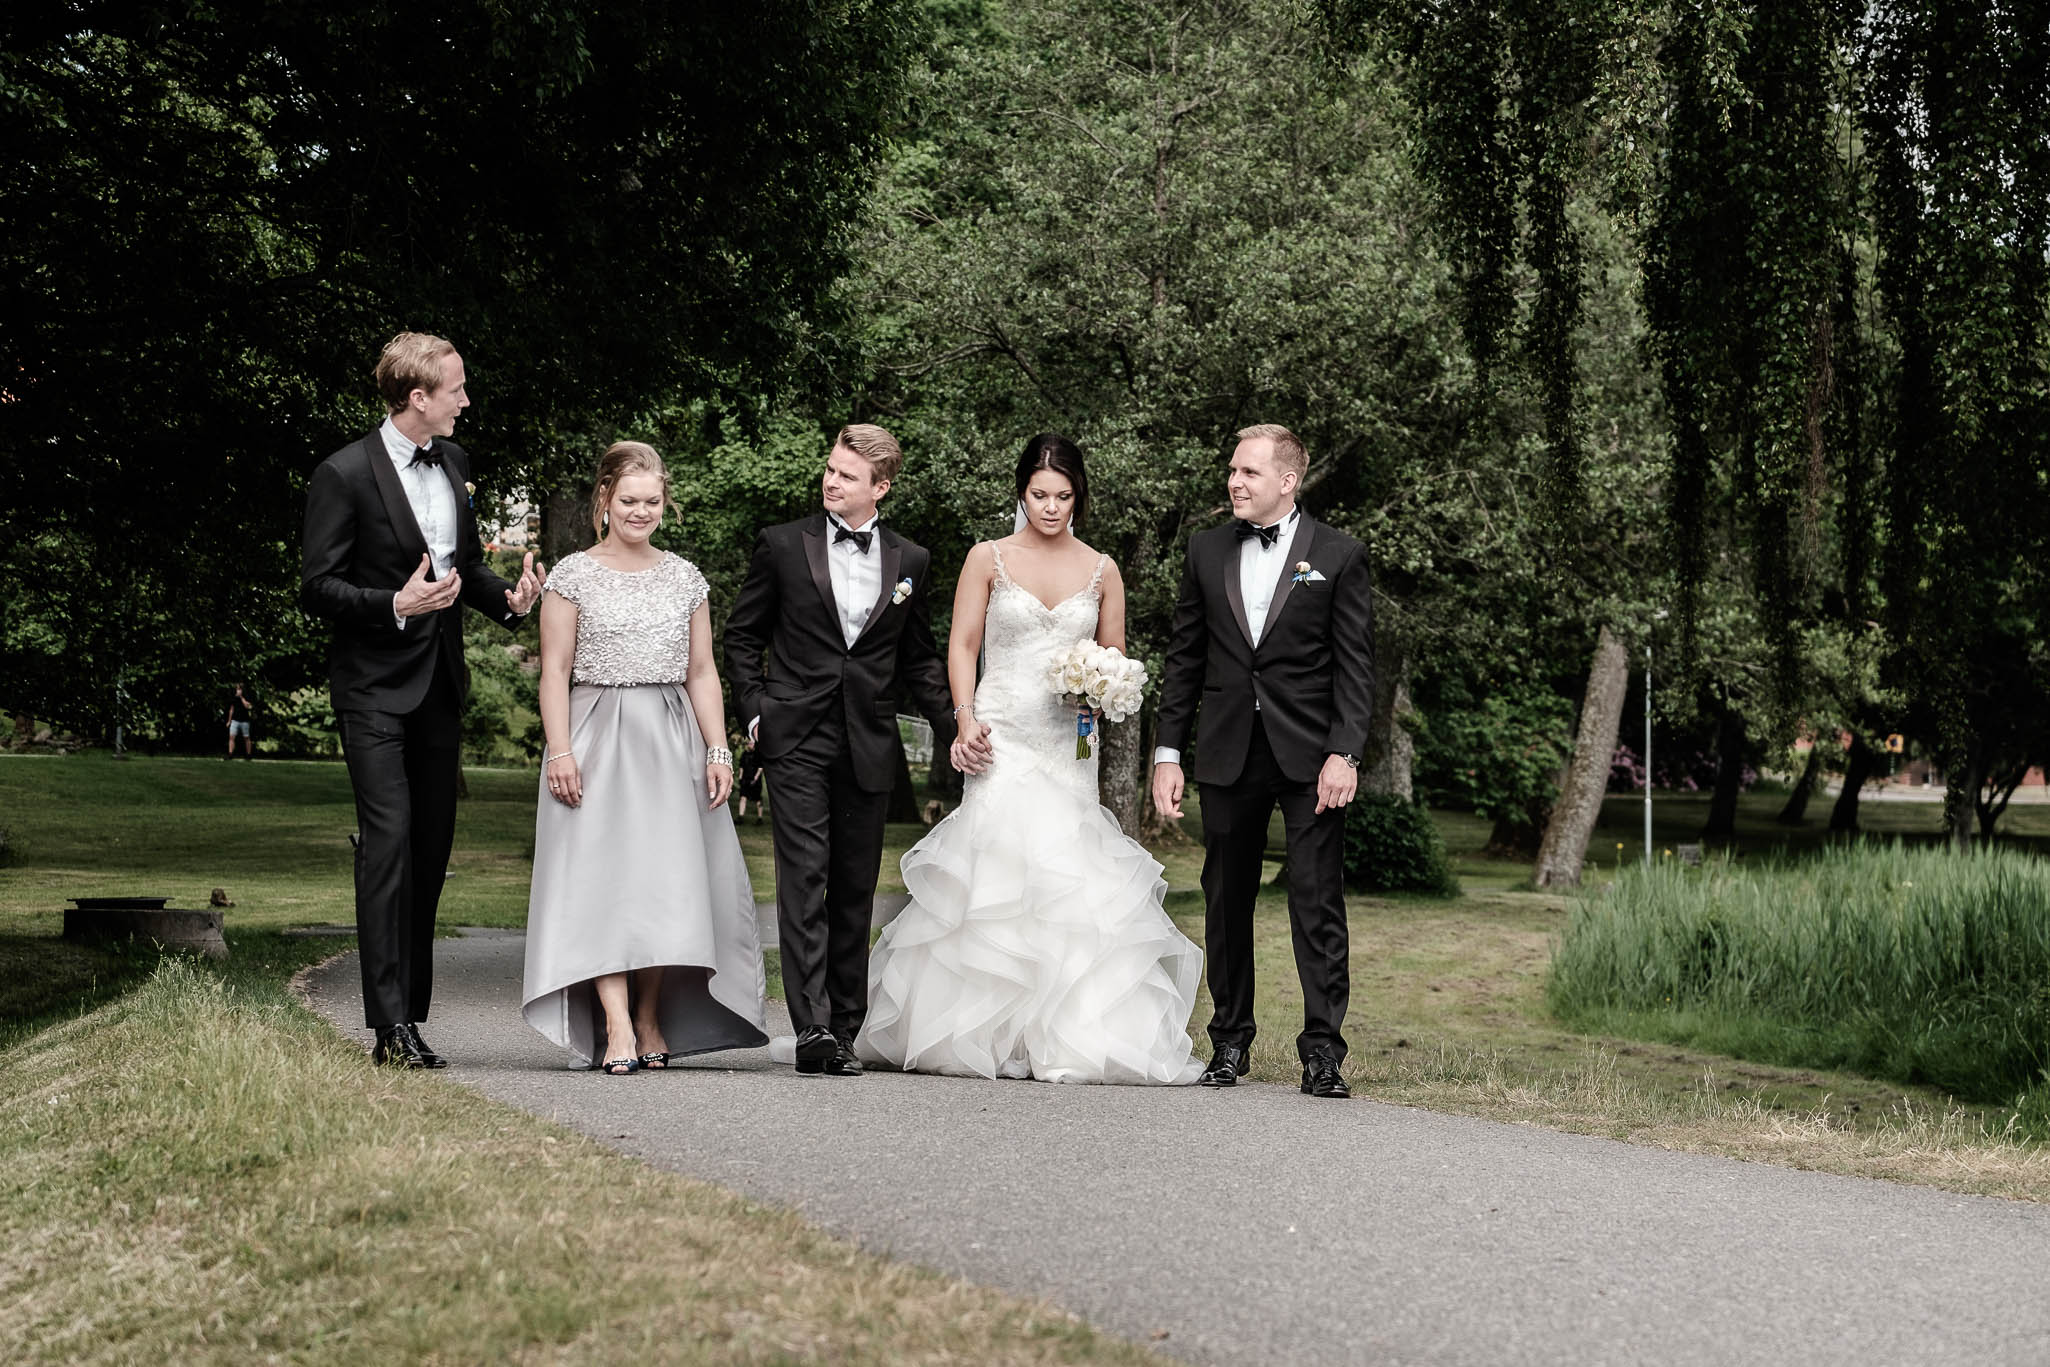 Click to enlarge image linnchristin-andreas-hallsnas-ottossonphoto-1023.jpg